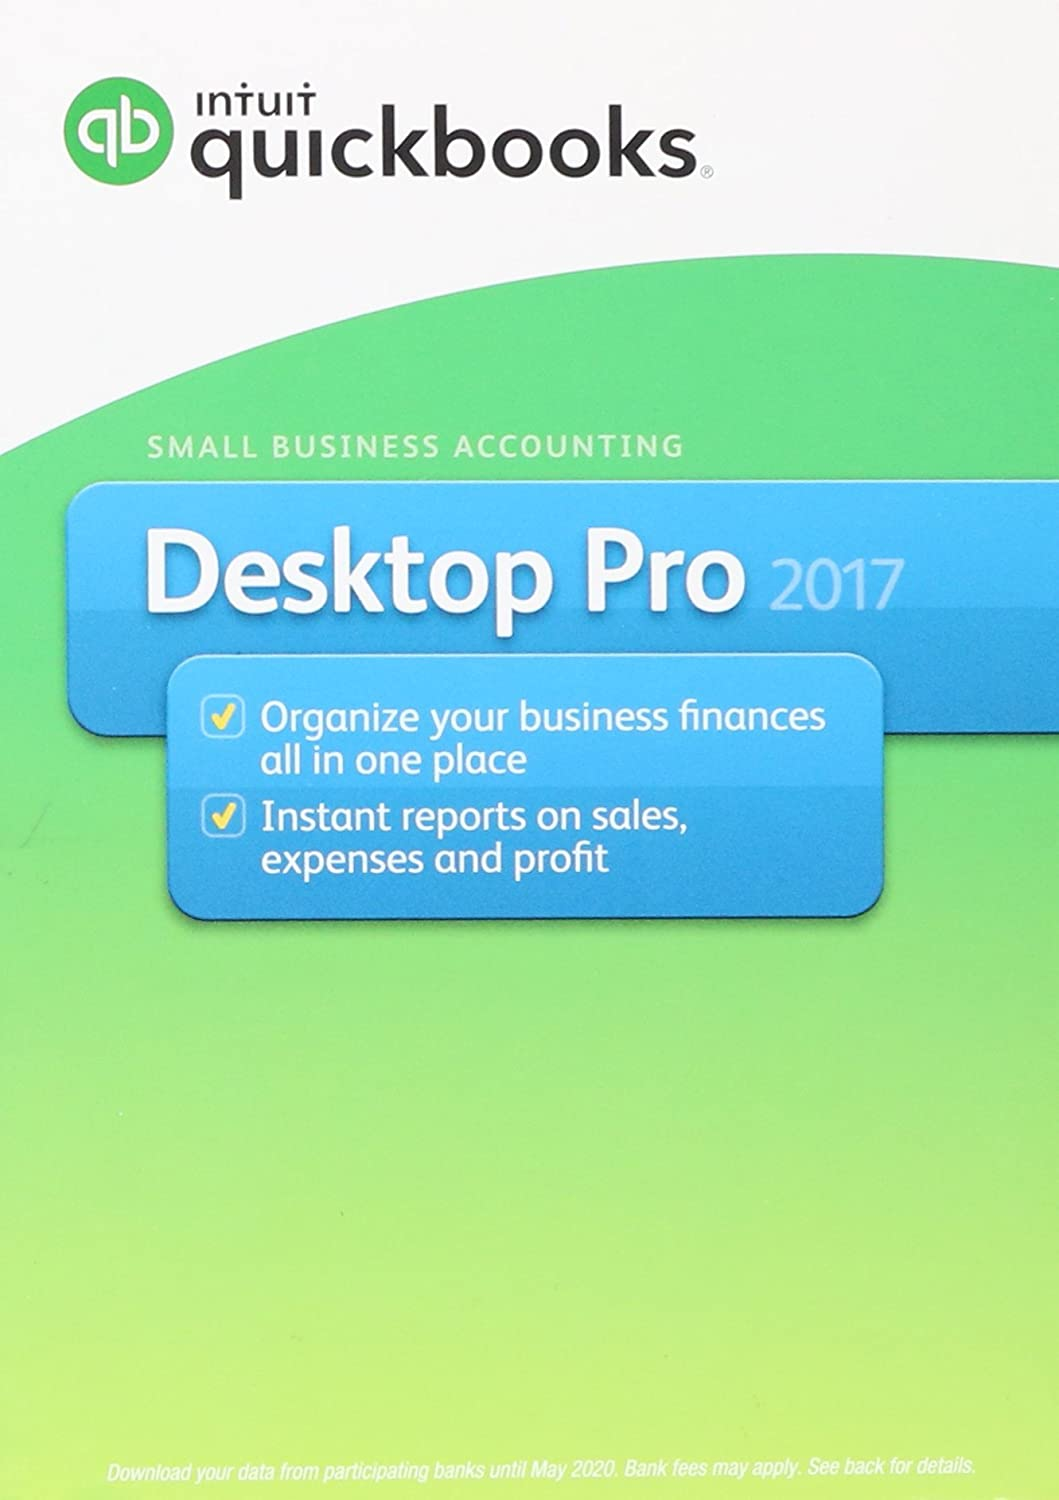 Intuit QuickBooks Desktop Pro 2017 Small Business Accounting Software [Old Version]